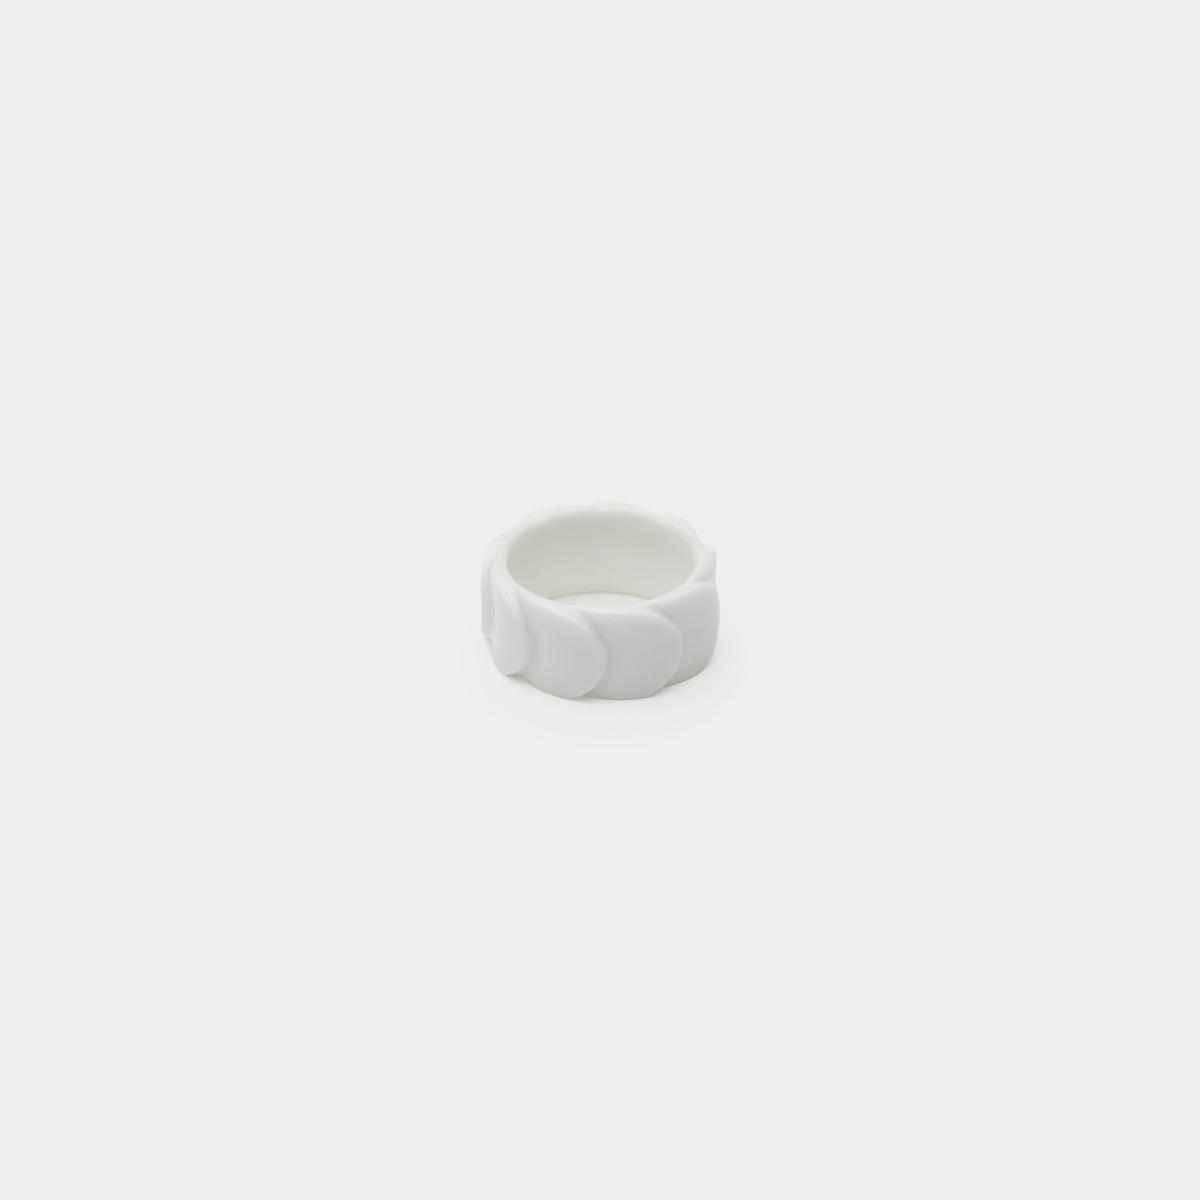 [Accessory] 2016/ Saskia Diez Drake Ring No.2 (White) | Imari-Arita Wares